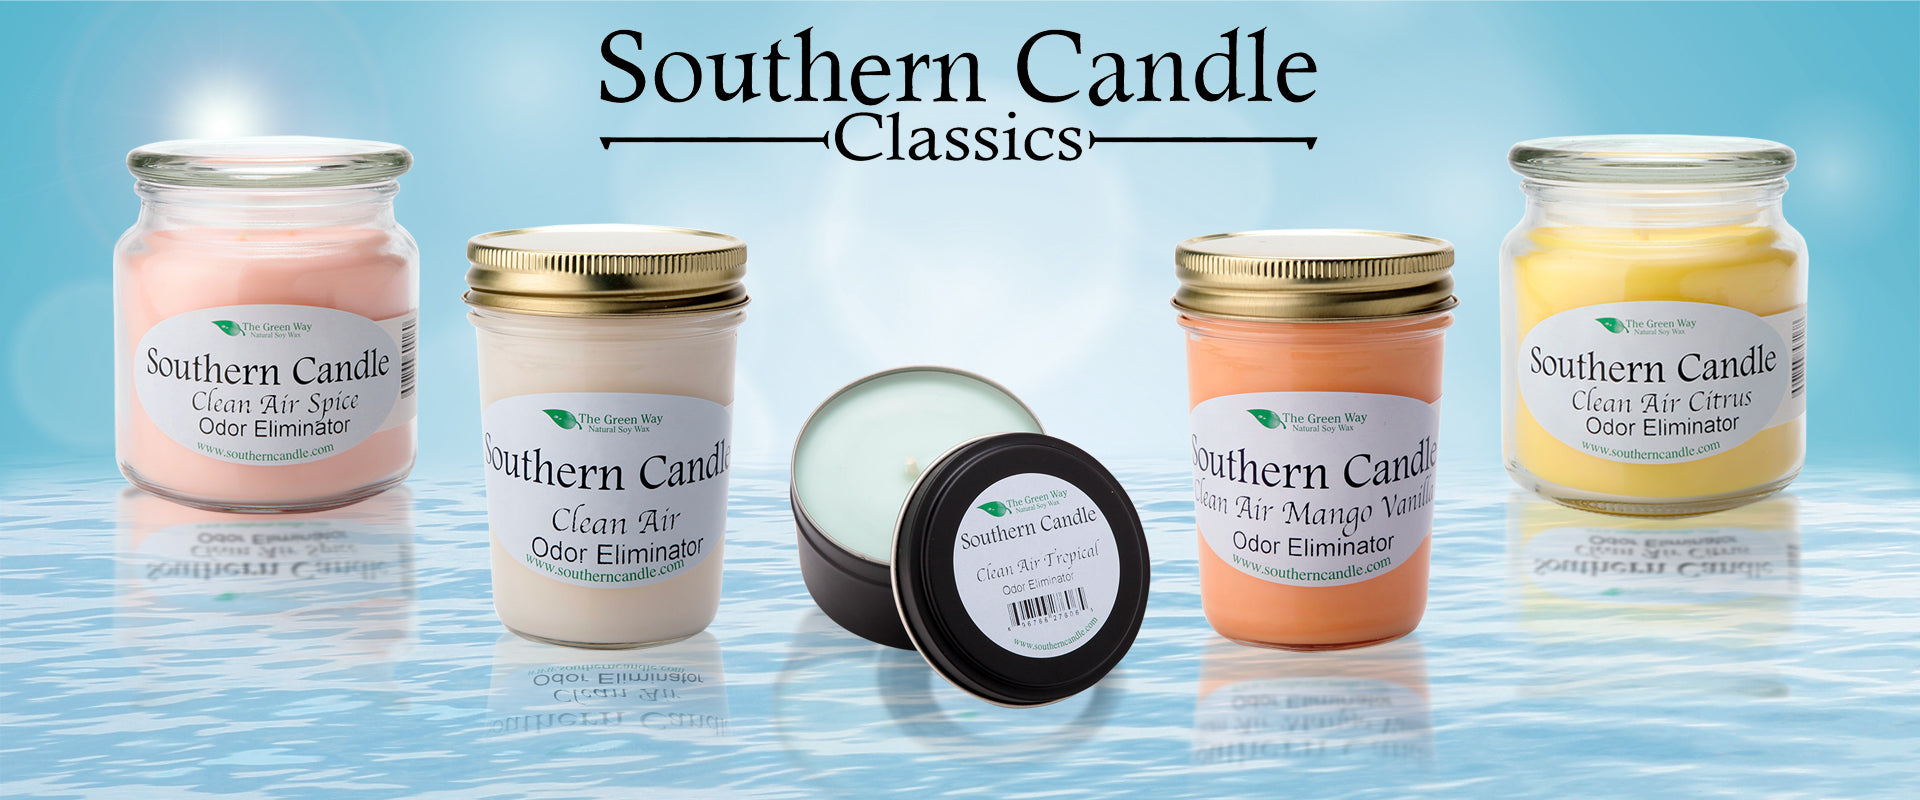 Southern Candle Classics Gift Sets Tagged Tag